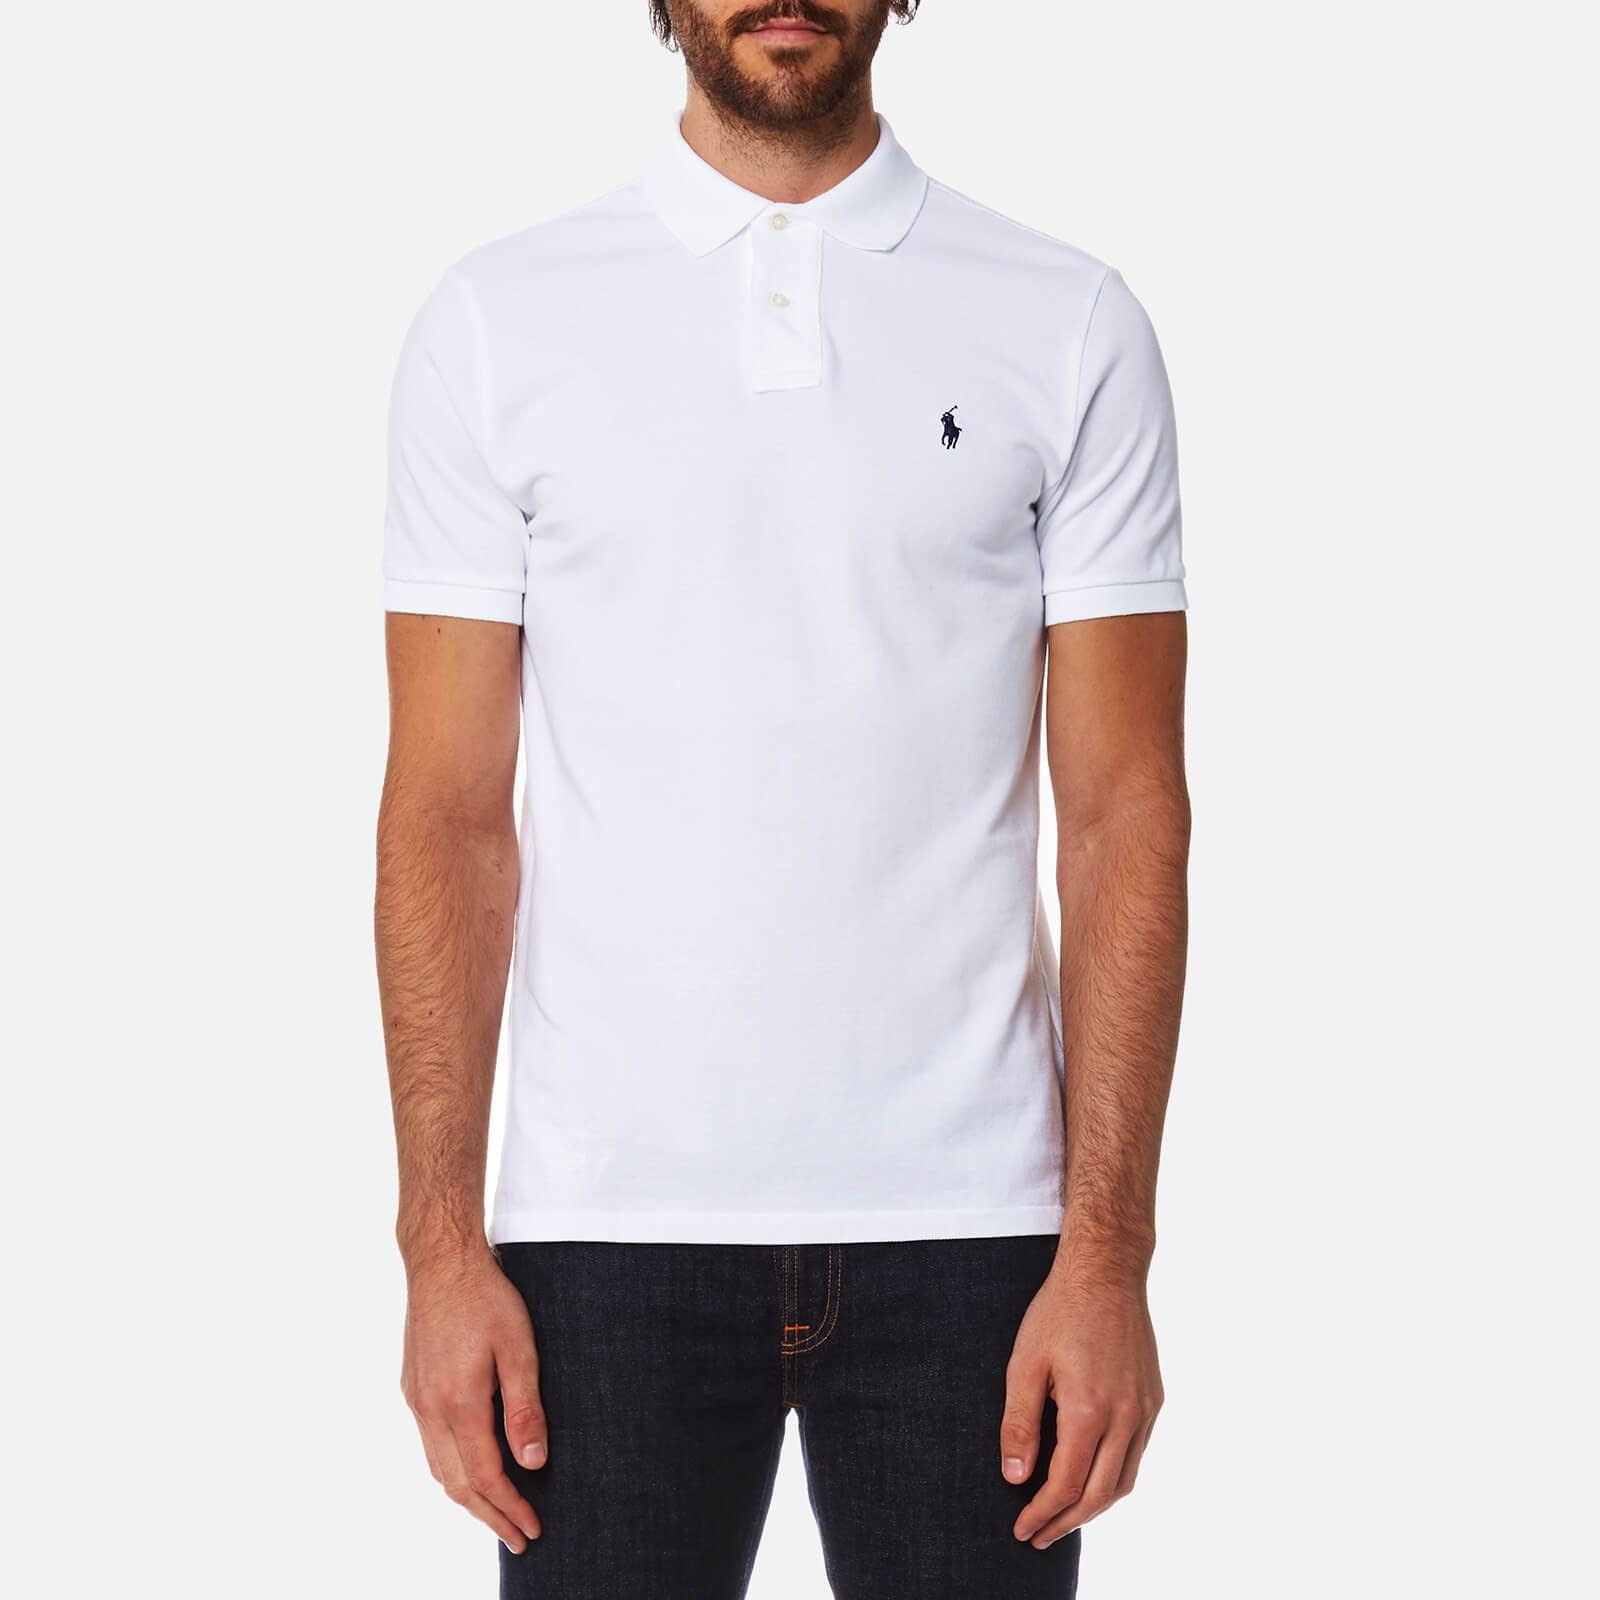 9d7e469e Polo Ralph Lauren Men's Custom Fit Polo Shirt - White - Free UK Delivery  over £50